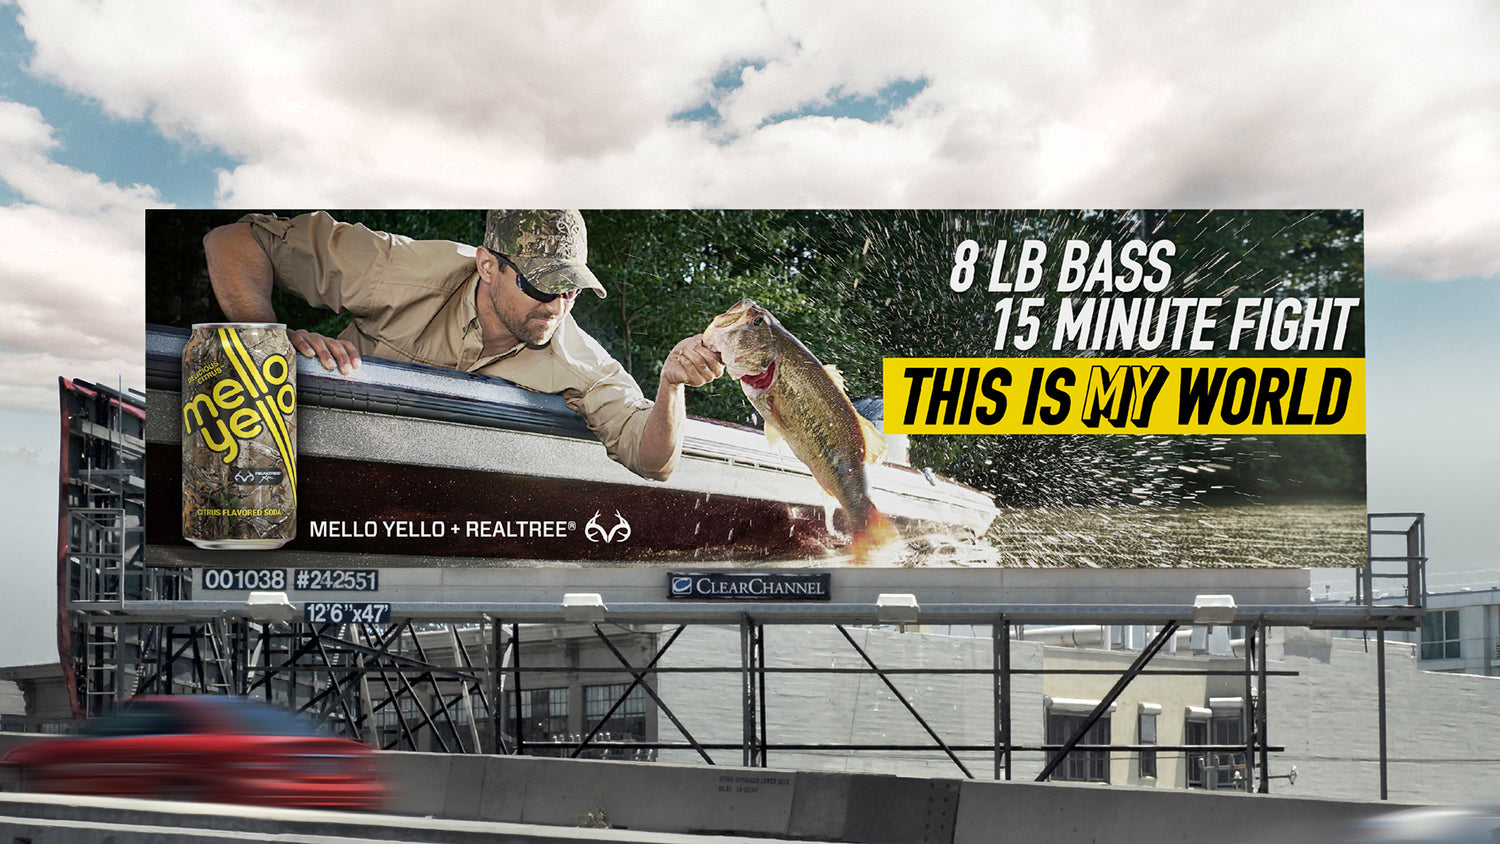 Mello Yello / Realtree billboard